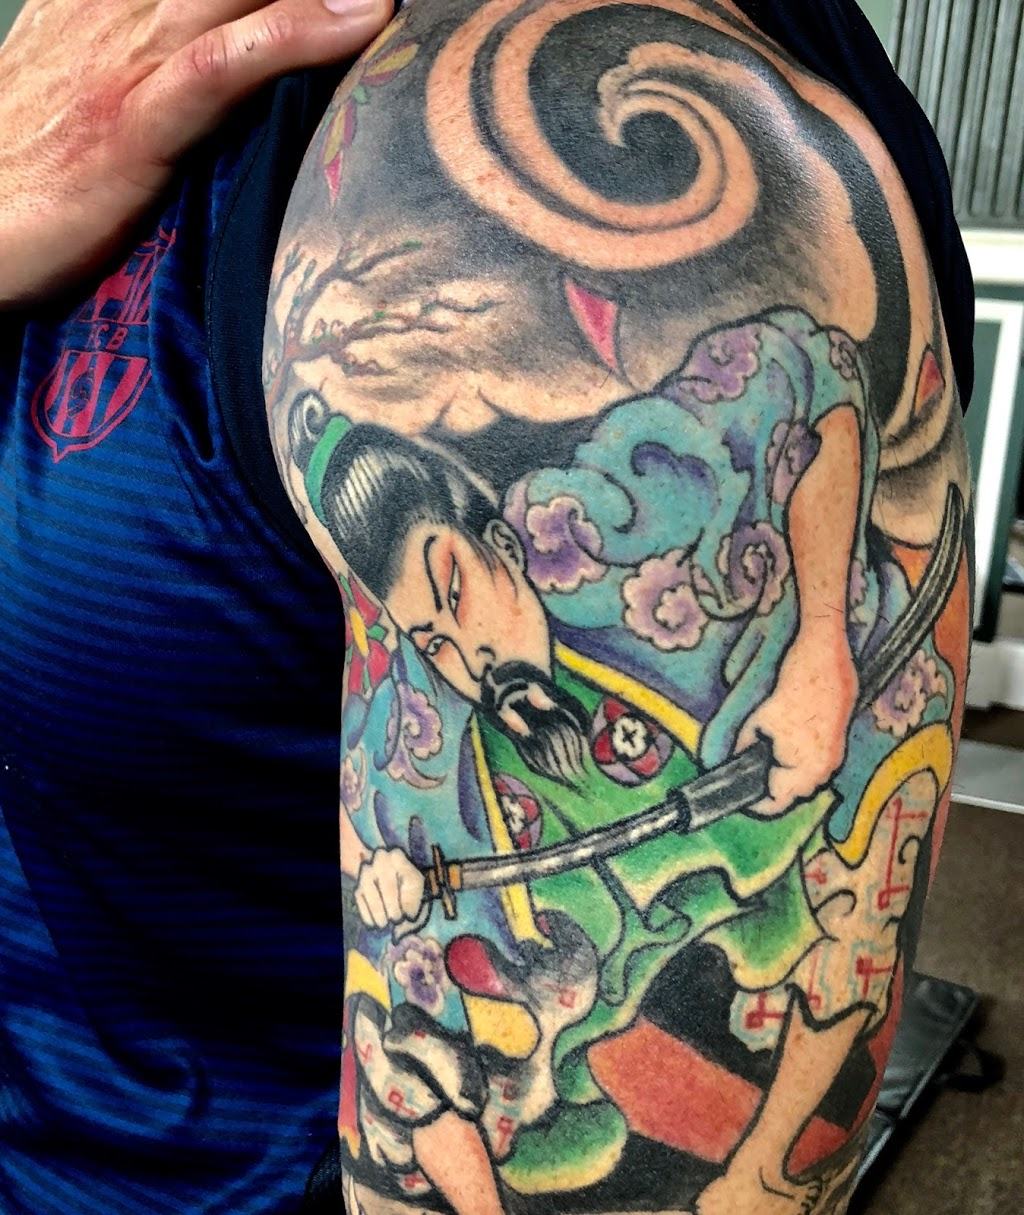 Damm Nice Tattoo and Body Art - store  | Photo 8 of 10 | Address: 736 Central Park Ave, Scarsdale, NY 10583, USA | Phone: (914) 751-3266